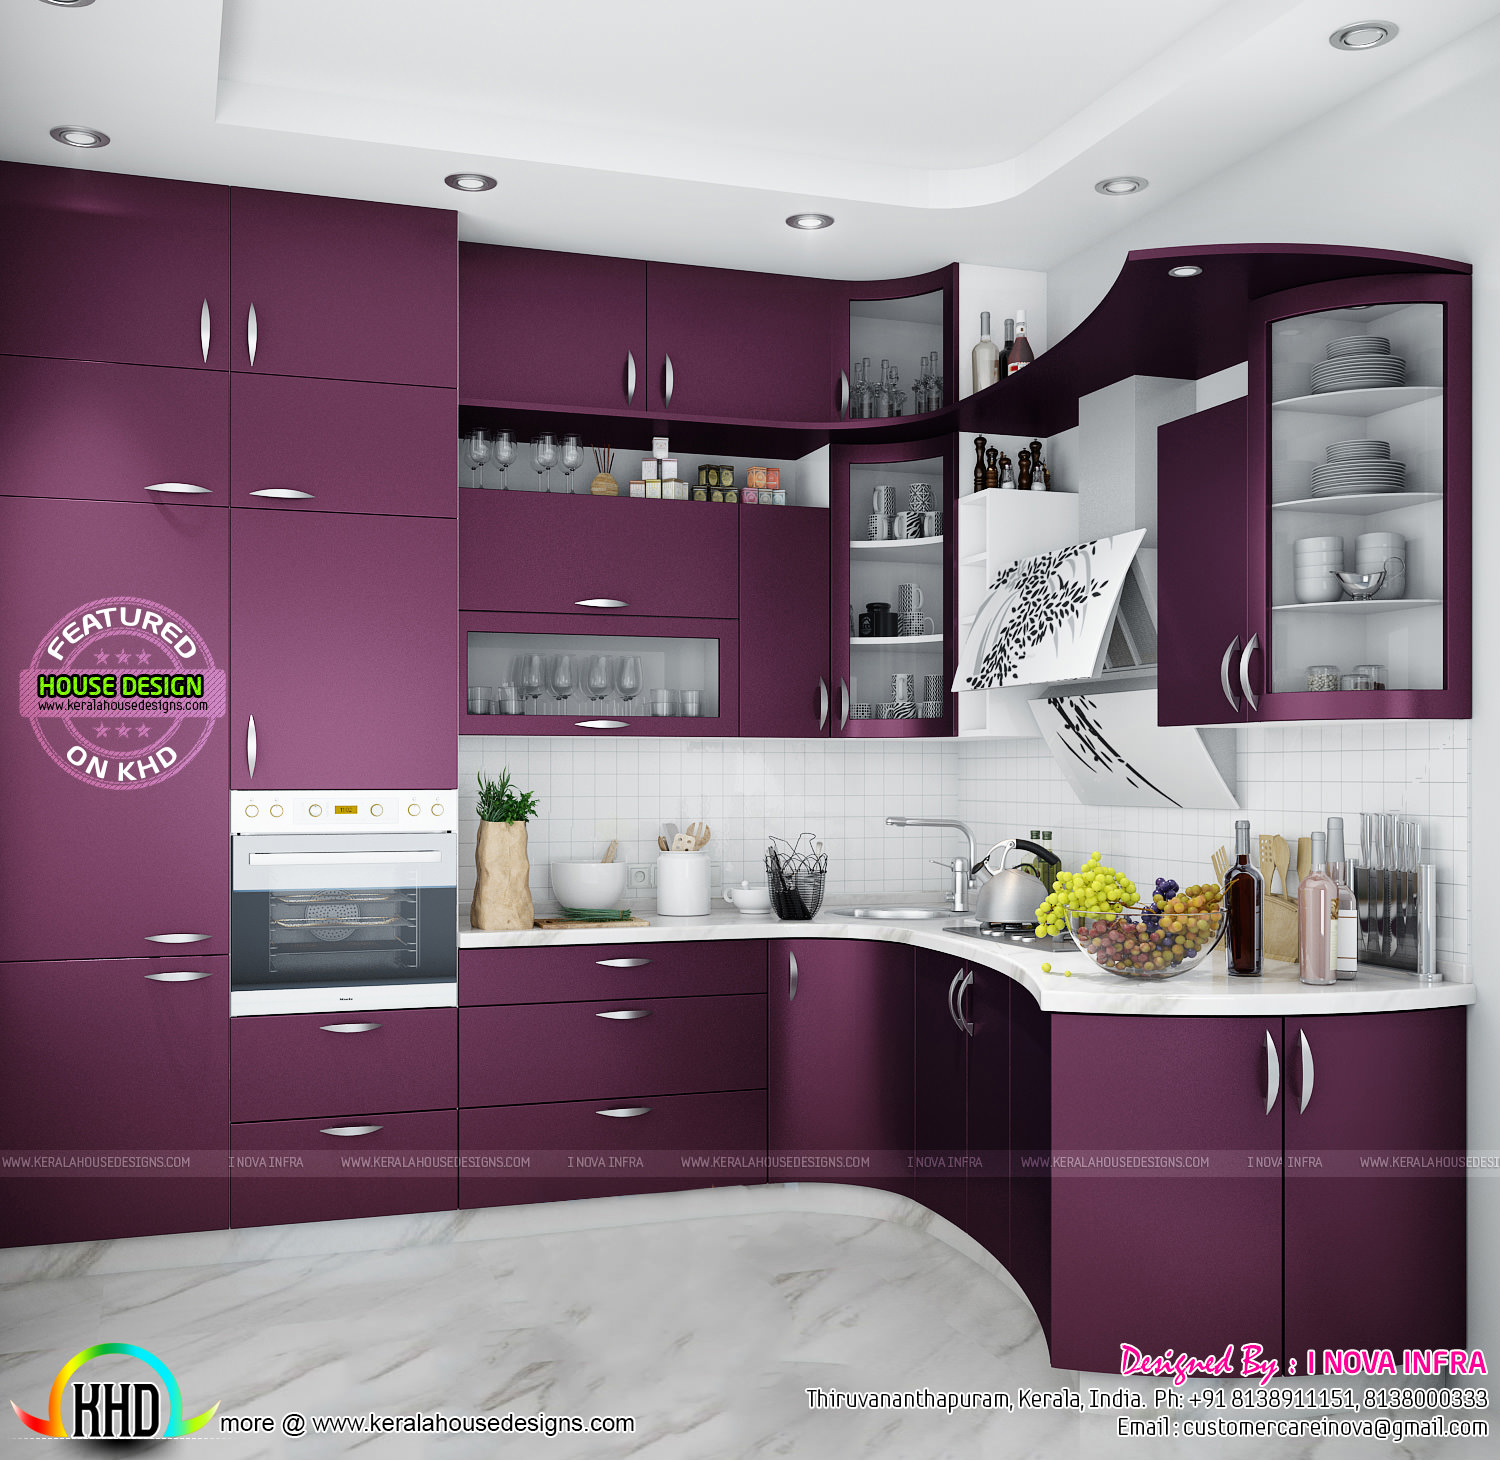 House Interior Design Kitchen: Kerala Home Design And Floor Plans